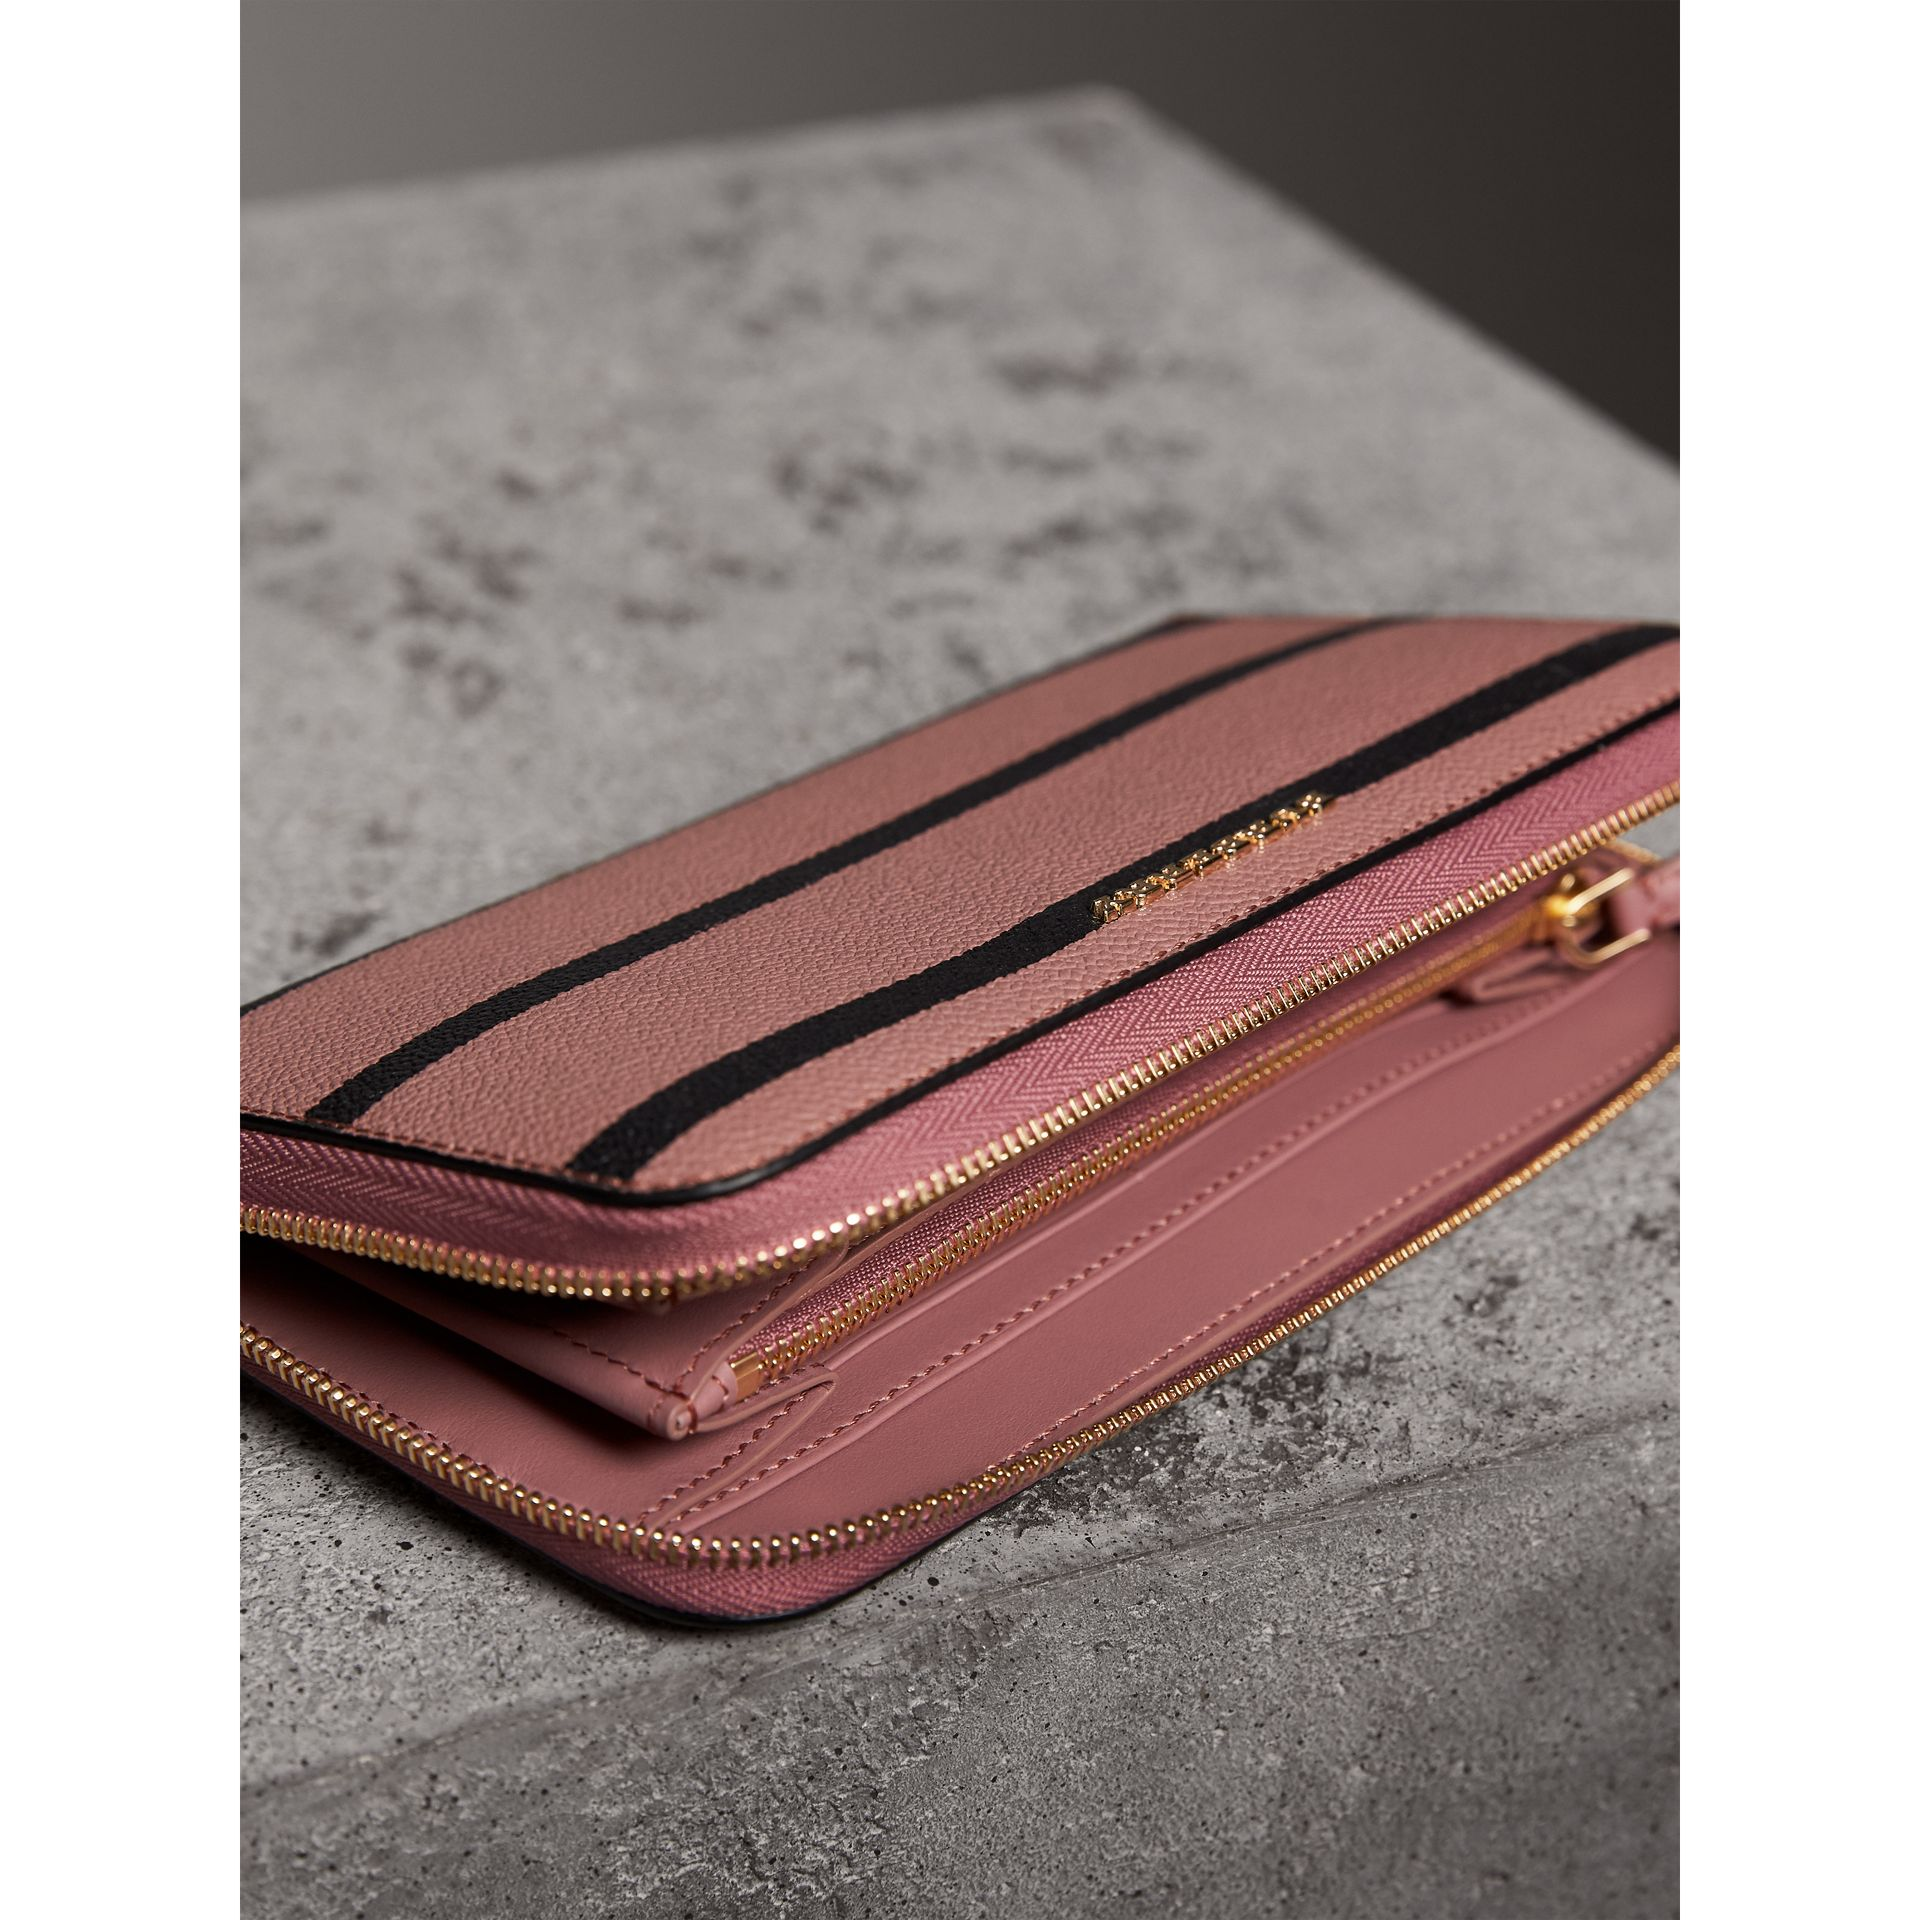 Trompe L'oeil Print Leather Ziparound Wallet in Dusty Pink - Women | Burberry - gallery image 9